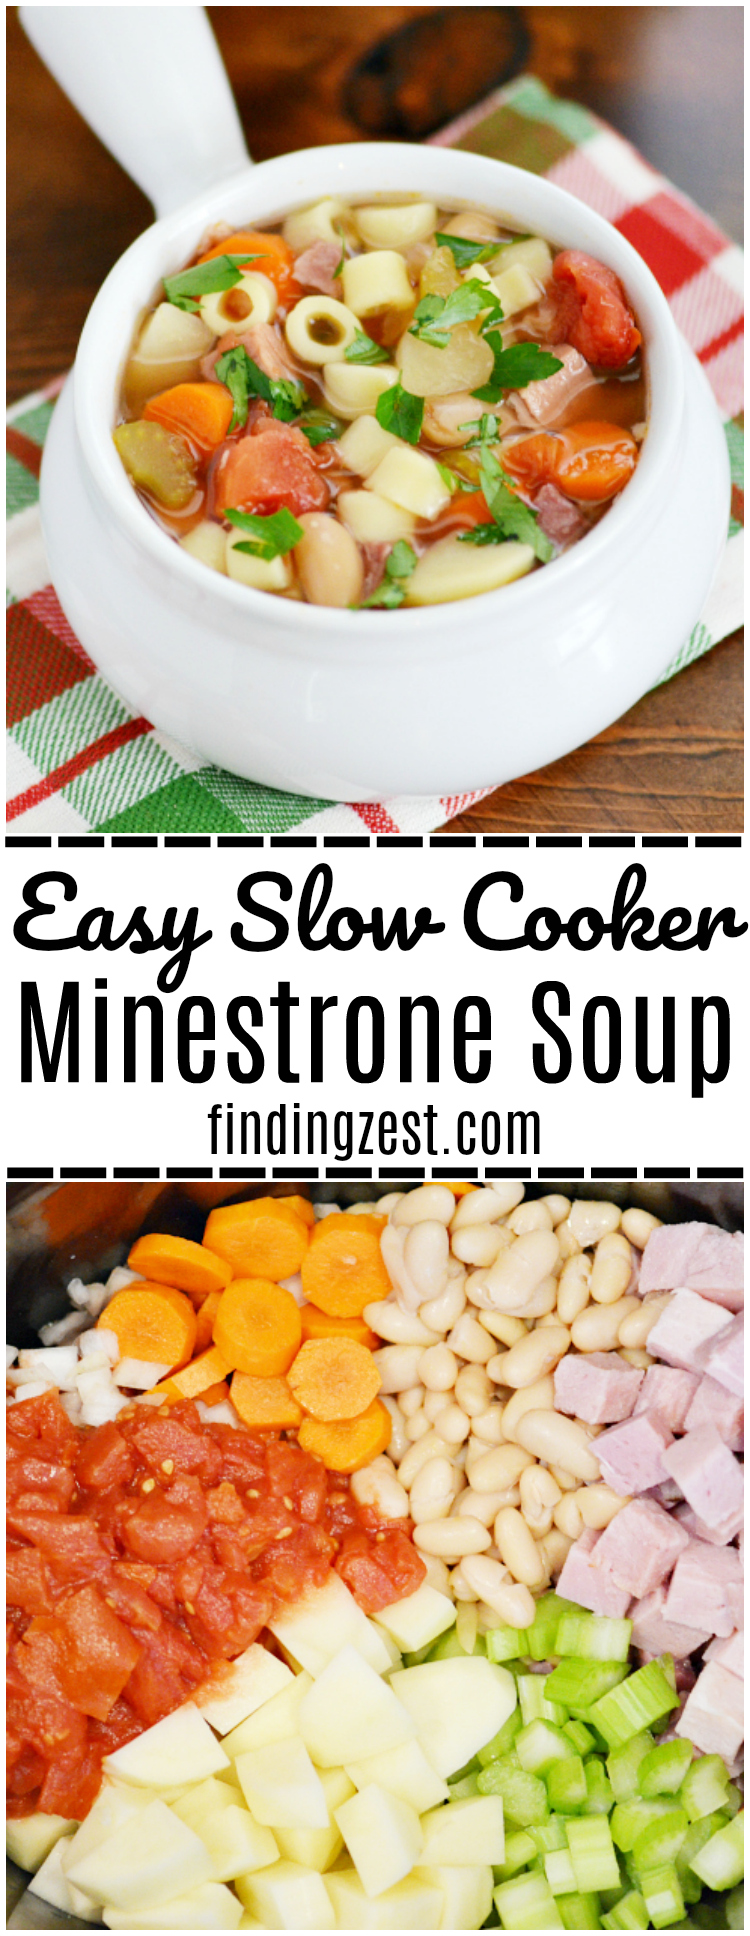 Enjoy this Easy Slow Cooker Minestrone Soup loaded with ham, vegetables and pasta any time you need a hearty meal to warm you up this winter!